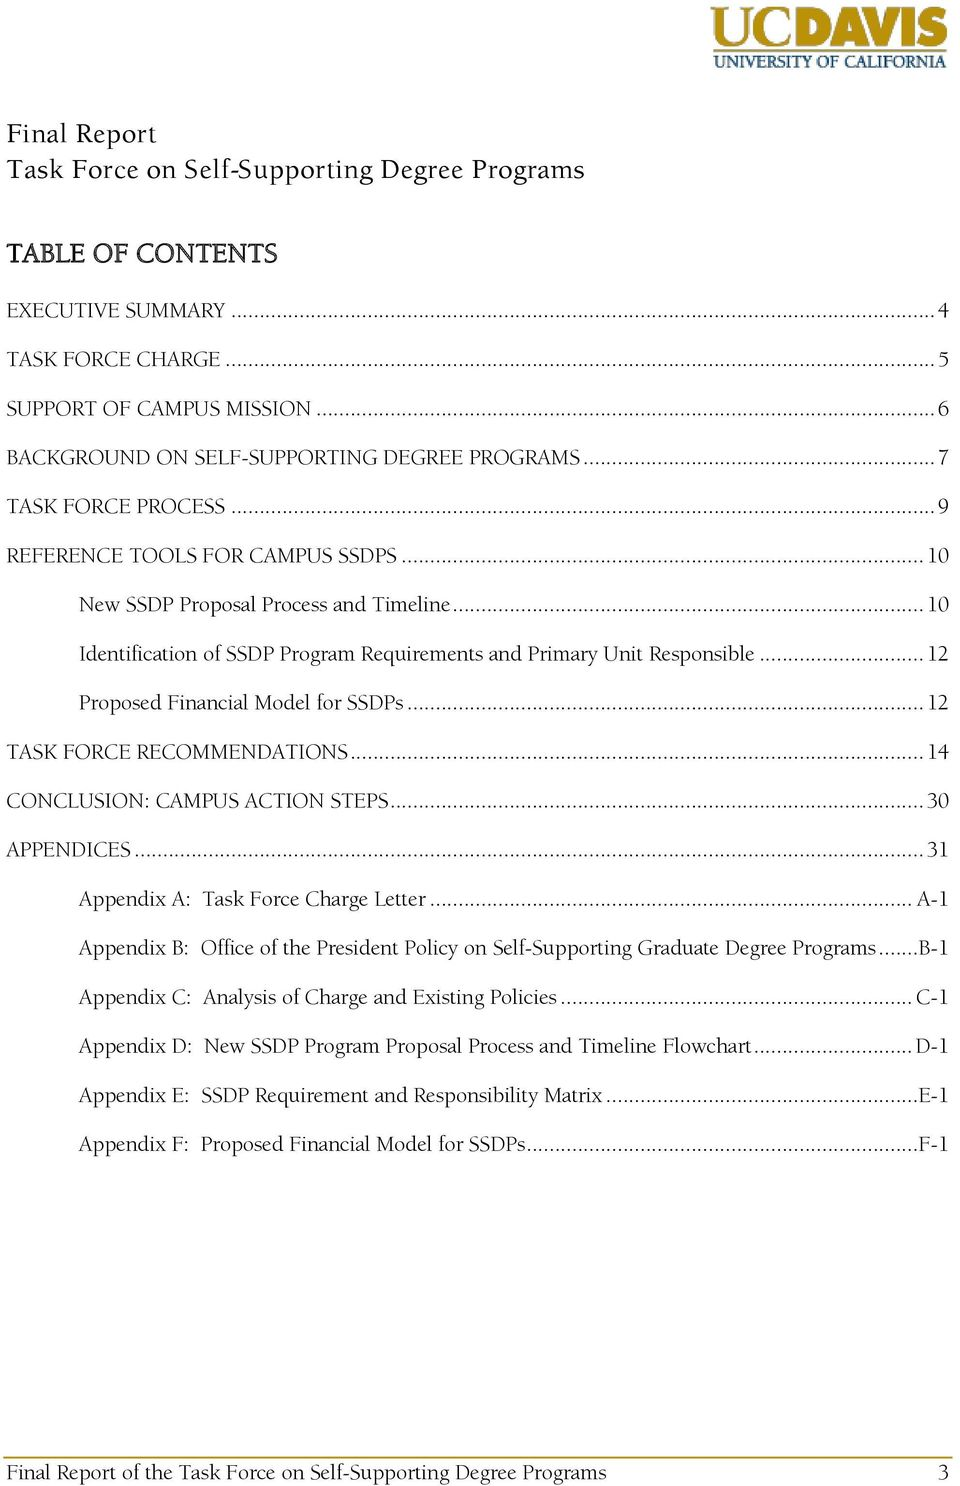 .. 12 Proposed Financial Model for SSDPs... 12 TASK FORCE RECOMMENDATIONS... 14 CONCLUSION: CAMPUS ACTION STEPS... 30 APPENDICES... 31 Appendix A: Task Force Charge Letter.